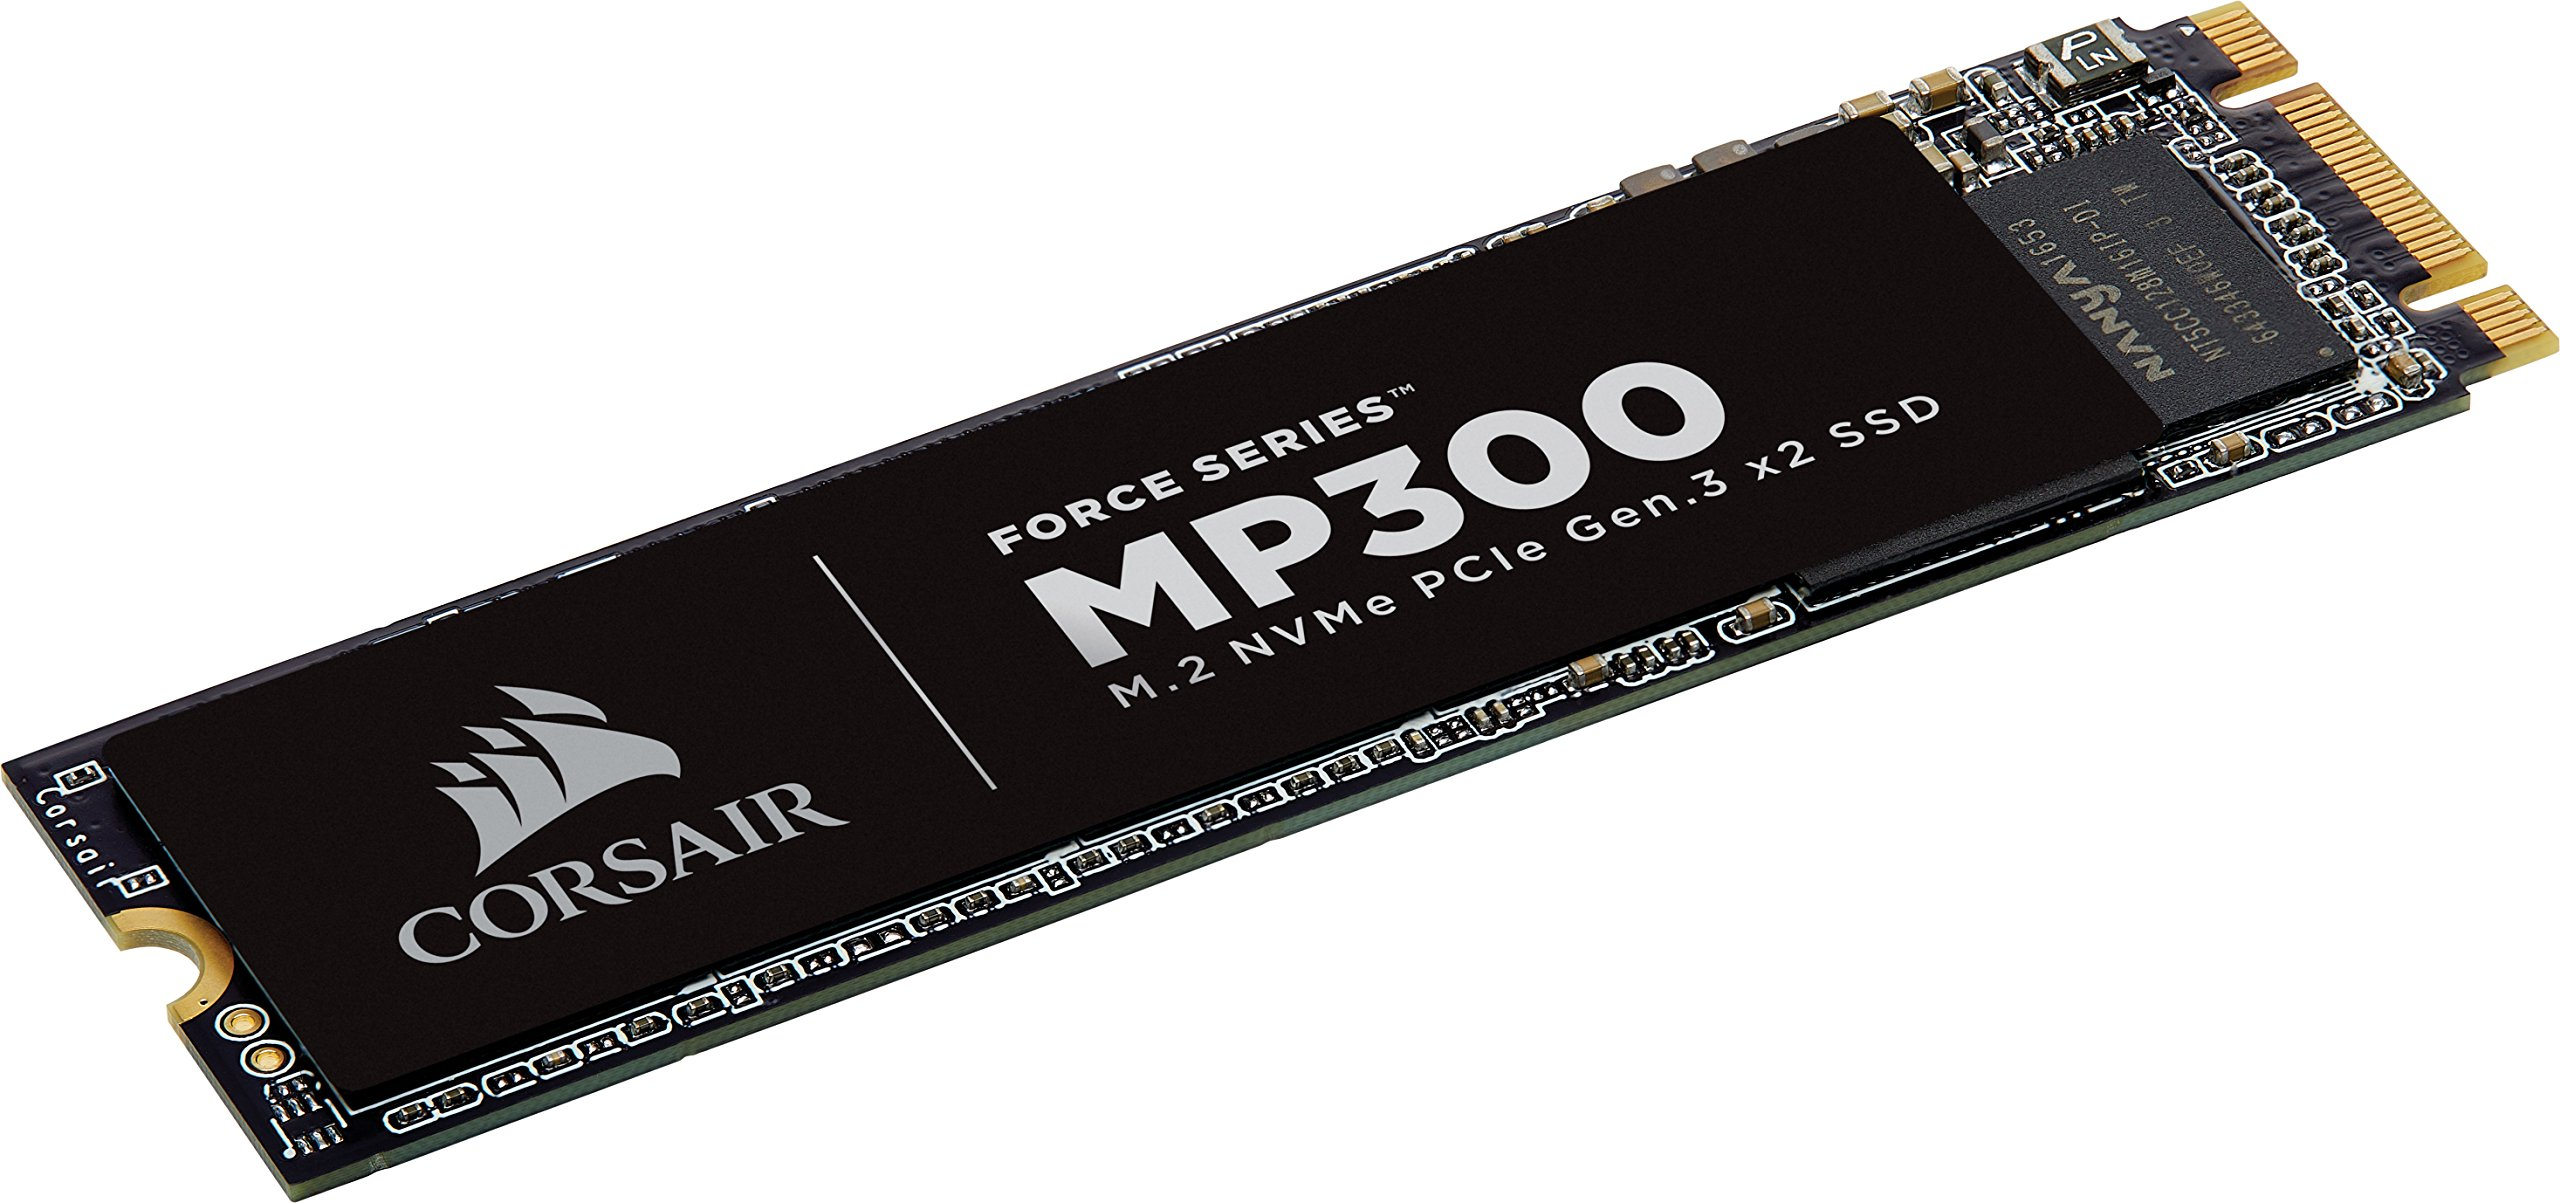 Computer_Drive_OR_Storage 3 High-speed NVMe PCI Express Gen 3 x2 interface for speeds up to 1600MB/sec, 3x faster than SATA 6Gbps Utilizing state-of-the art, high-density 3D TLC NAND for the ideal mix of performance, Endurance and value Compact M. 2 2280 industry standard form Factor fits directly into your notebook or motherboard